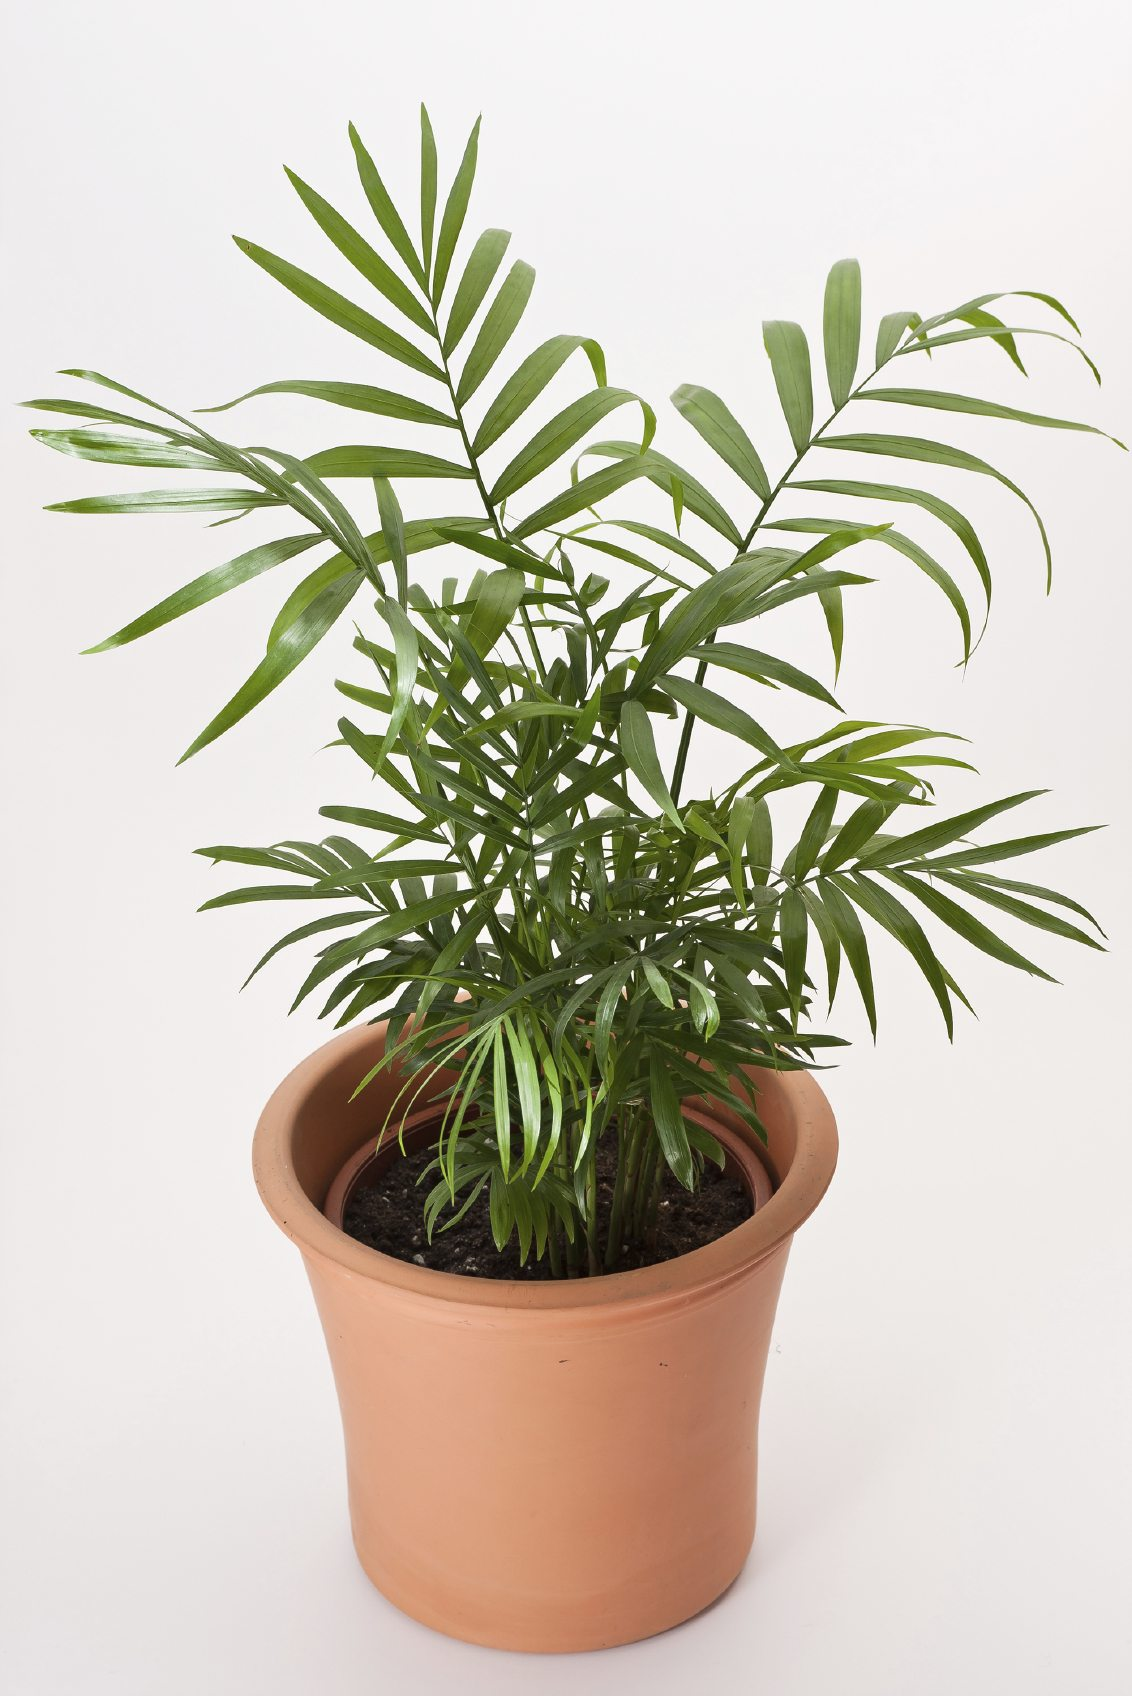 parlor-palm-pot Palm Trees For Houseplants on palm tree bonsai, palm tree floral, palm tree evergreen, palm tree nursery, palm tree tree, palm tree wreath, palm tree food, palm tree vegetable, palm tree outdoor, palm tree seedlings, palm tree roses, palm tree planting detail, palm tree fossil, palm tree vines, palm tree bamboo, palm tree green, palm tree nature, palm tree lawn, palm tree shrub, palm tree water,